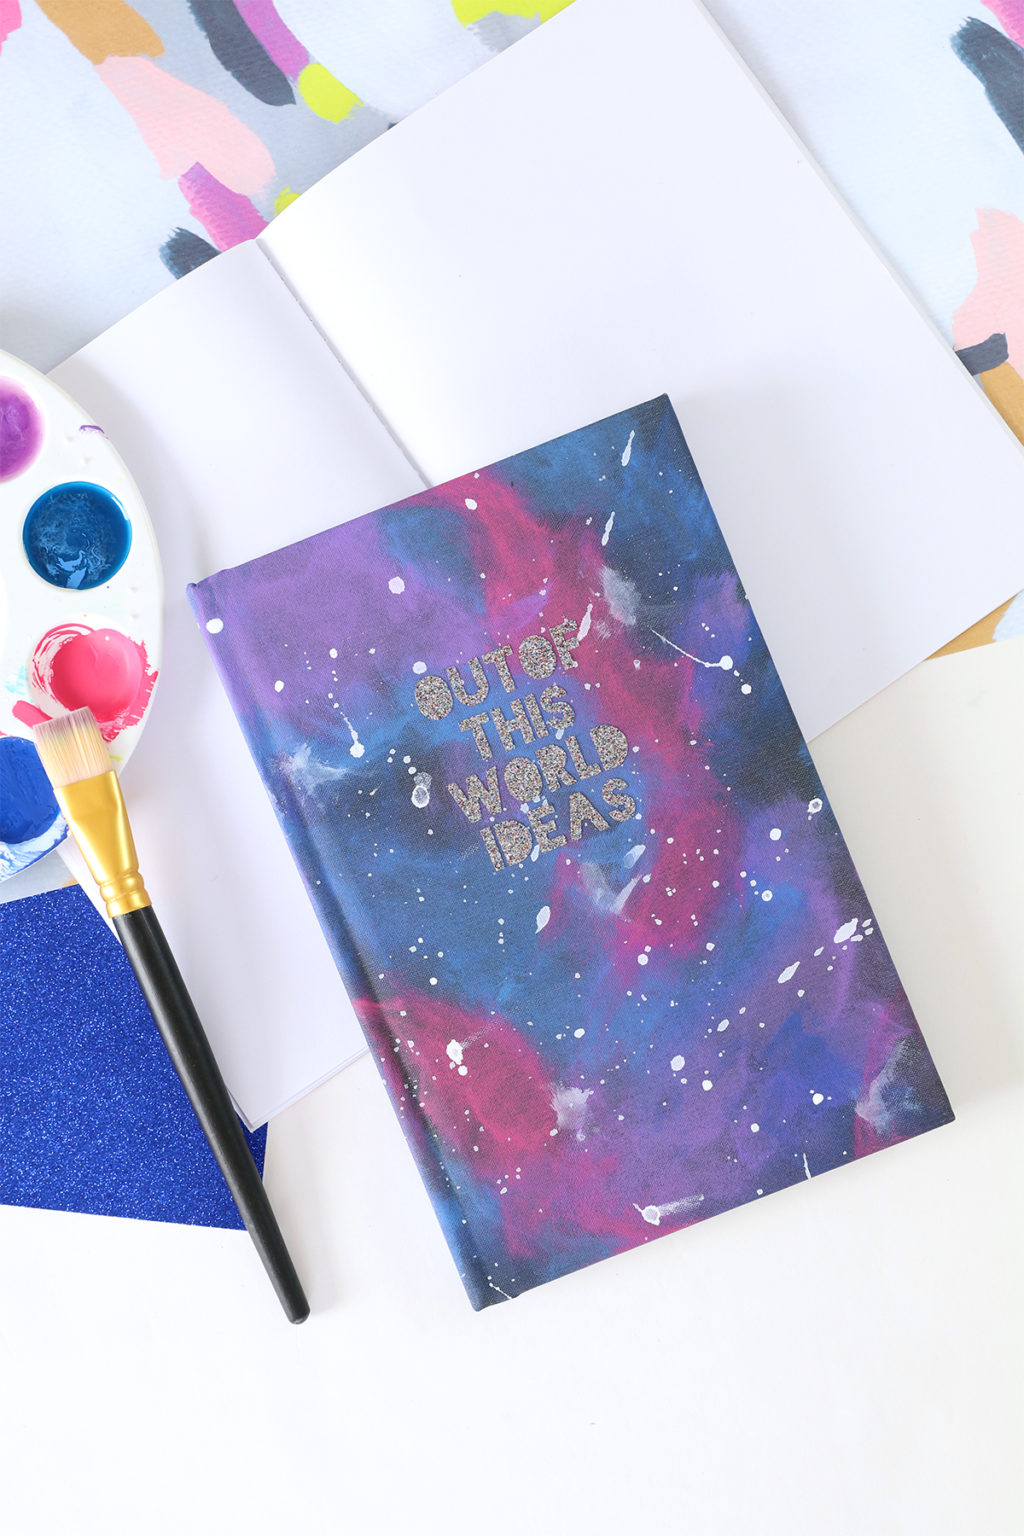 DIY galaxy painted notebook with glitter letters